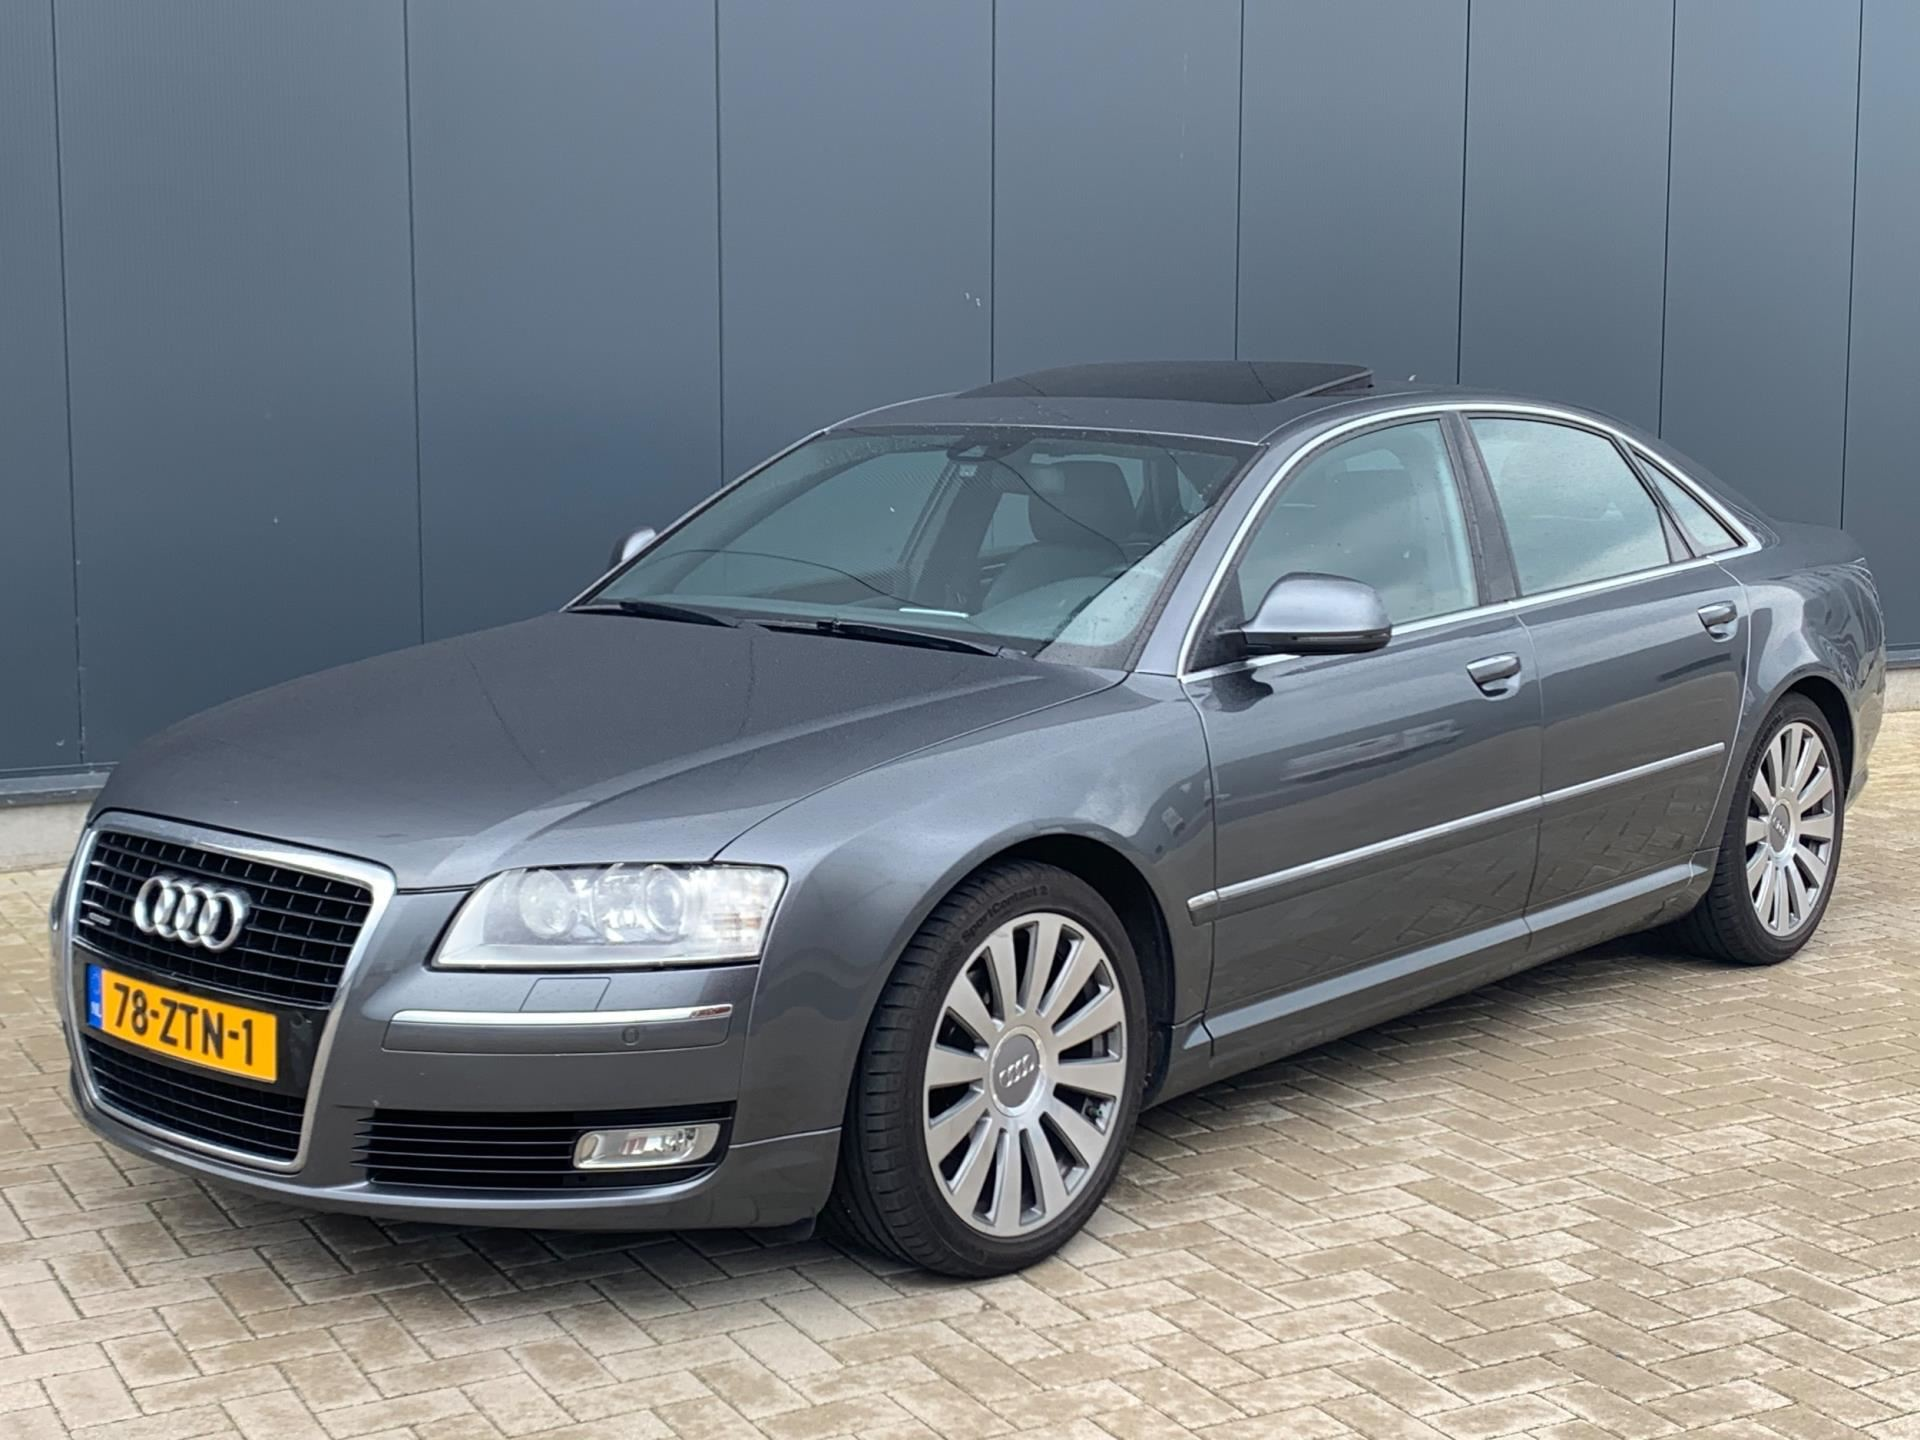 Audi A8 occasion - Dealer Outlet Cuijk b.v.